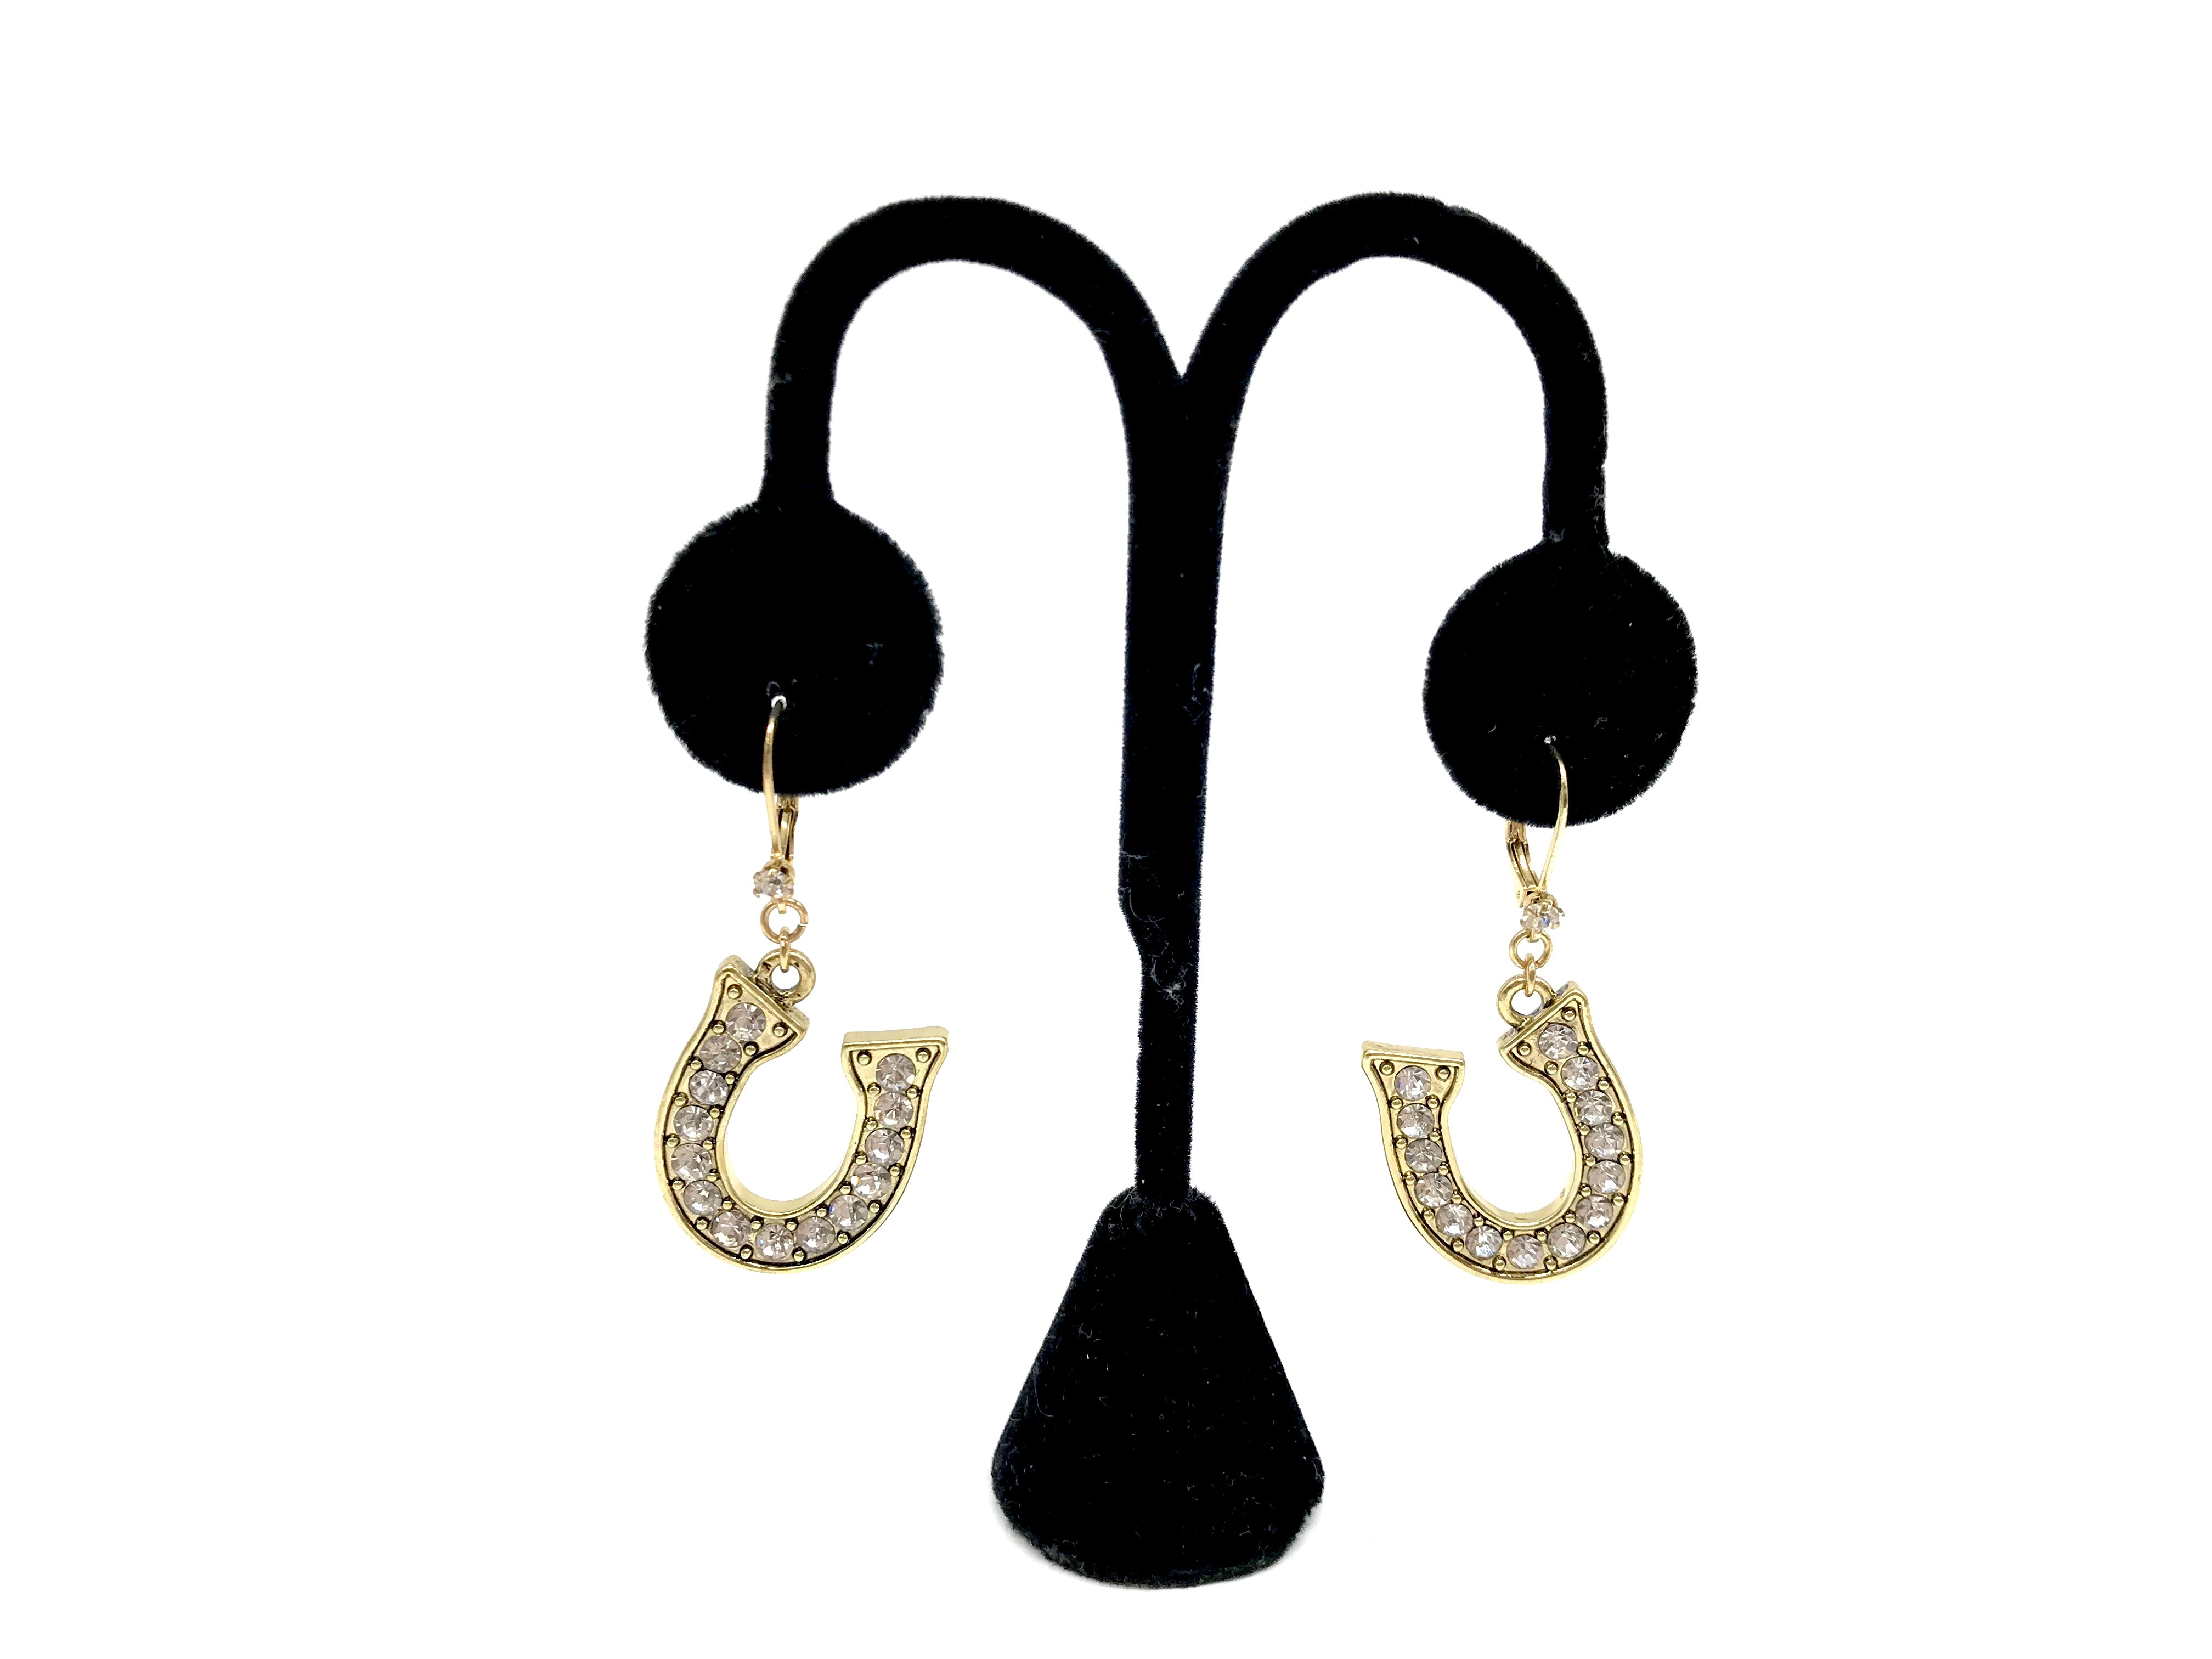 Primary Photo - BRAND: BETSEY JOHNSON <BR>STYLE: EARRINGS <BR>COLOR: MULTI <BR>SKU: 262-26211-139436<BR>AS IS